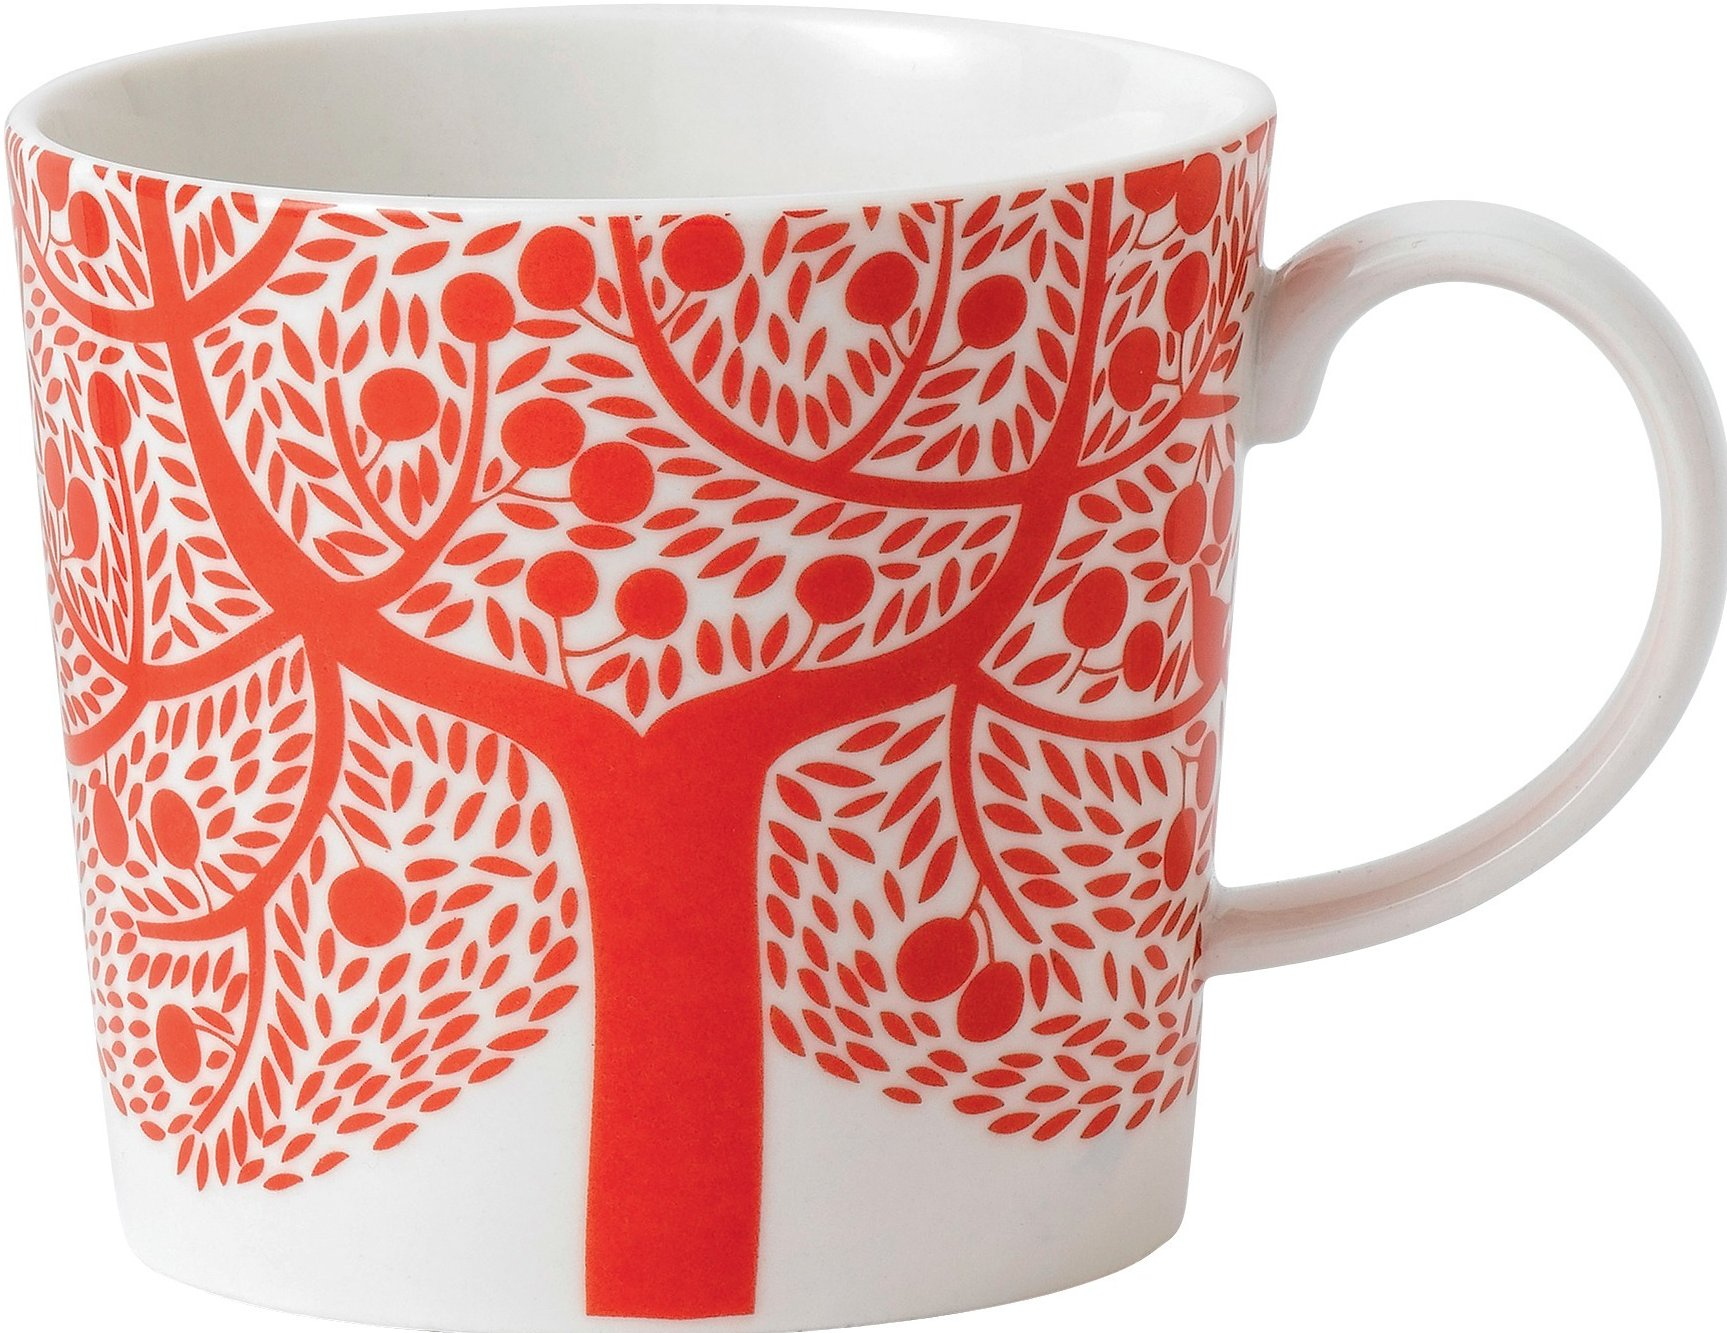 m chten sie royal doulton fable tasse 400ml roter baum kaufen frank. Black Bedroom Furniture Sets. Home Design Ideas